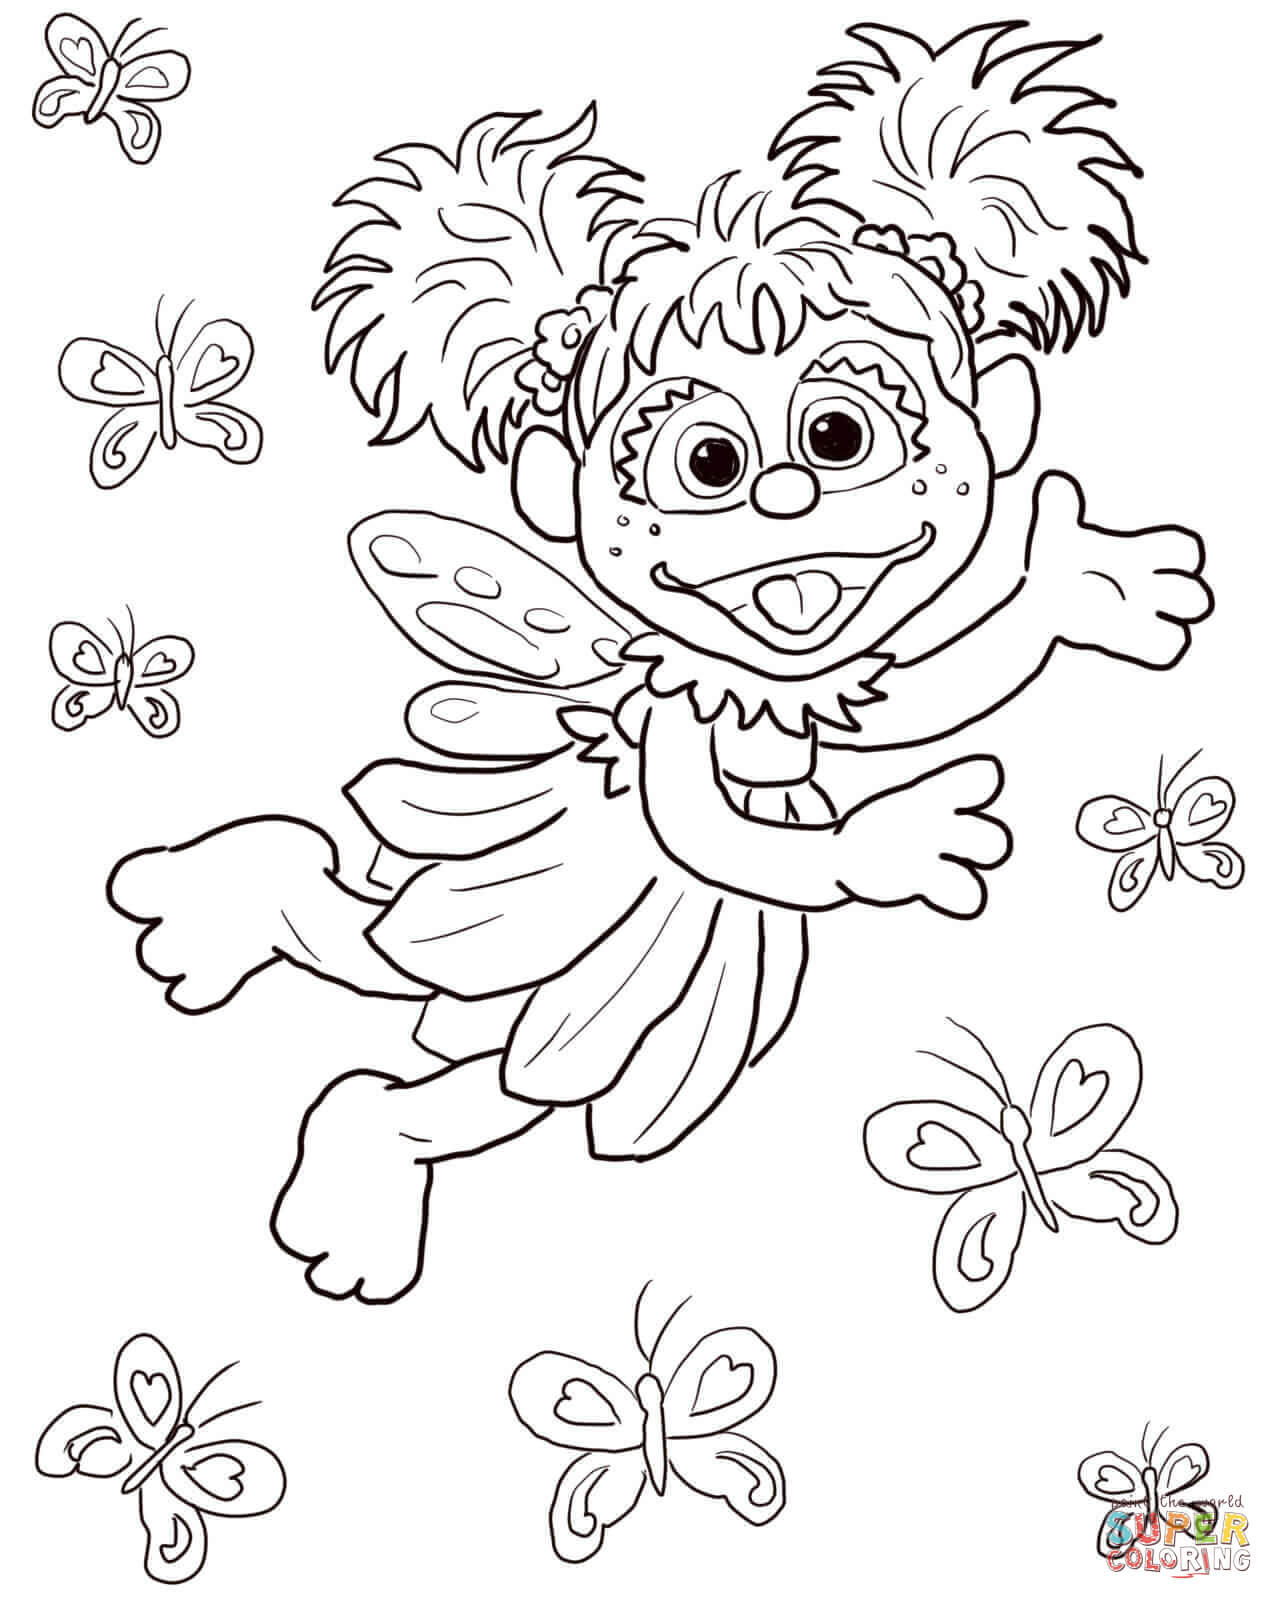 Abby Cadabby Flying With Butterflies Coloring Page